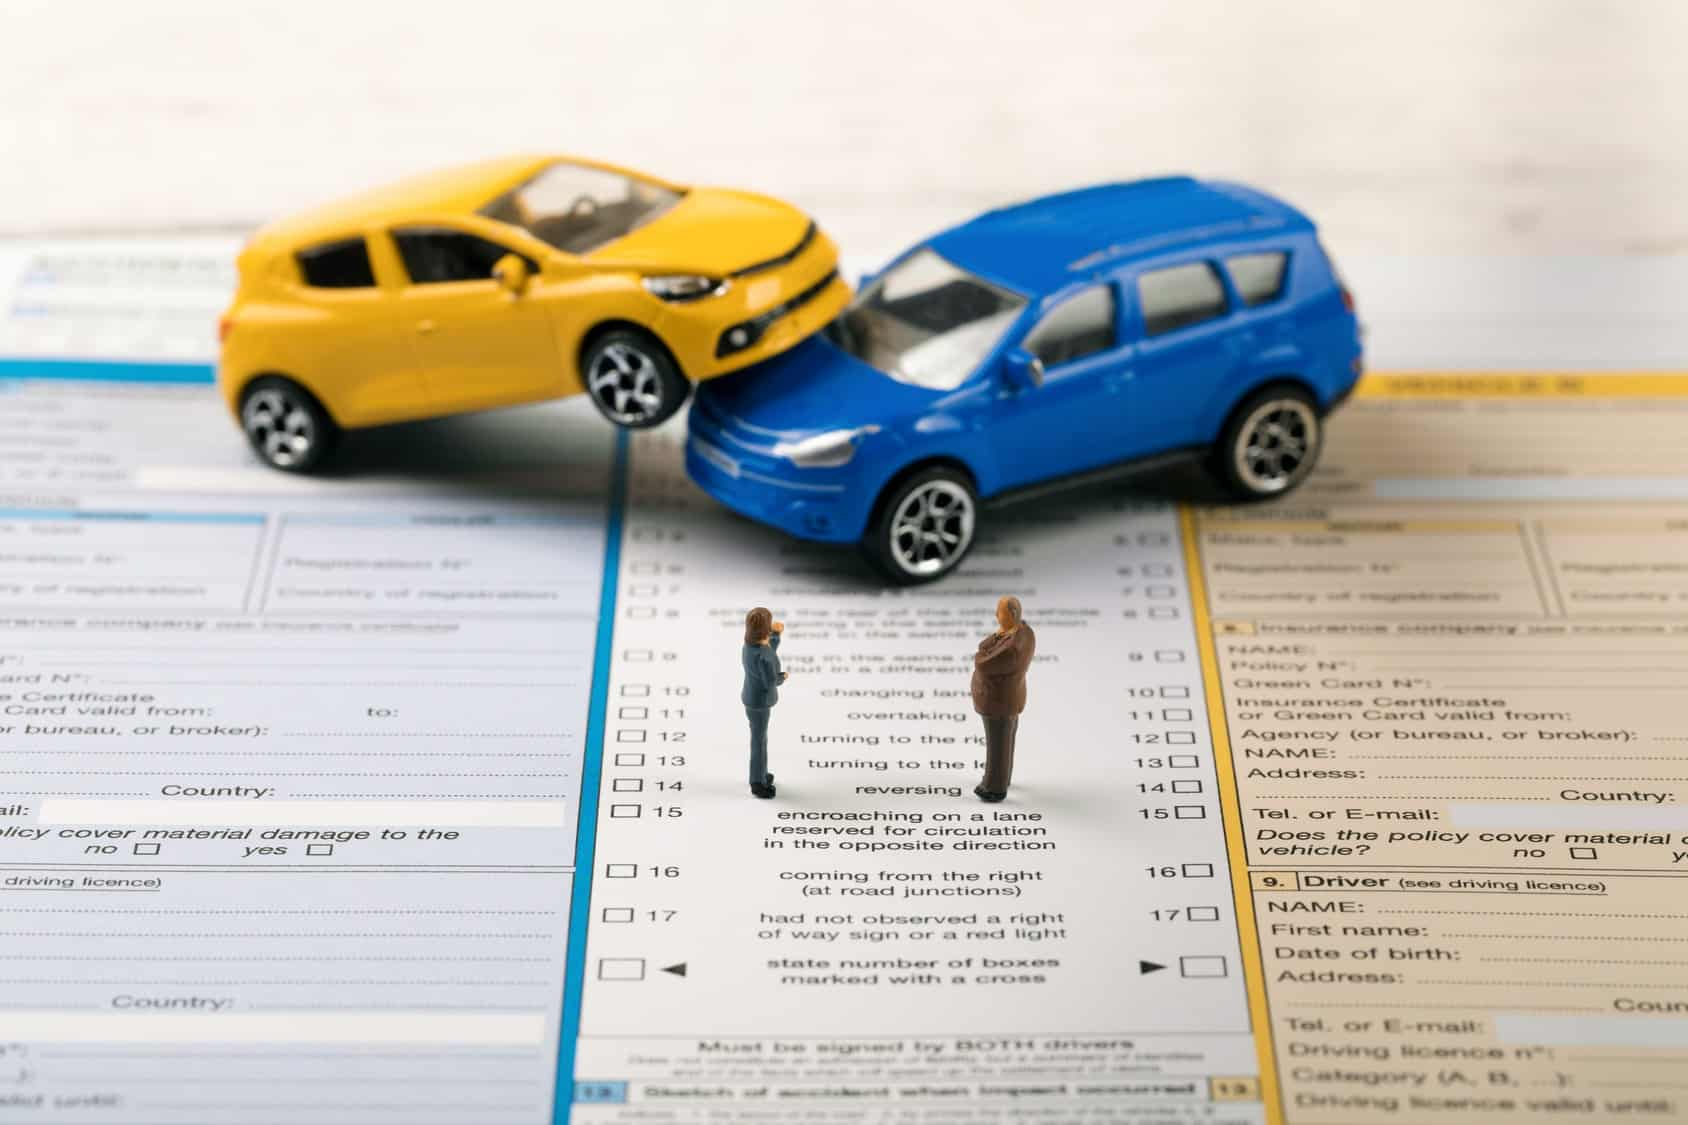 How Should You Deal With Your Insurance Company After an Auto Accident?